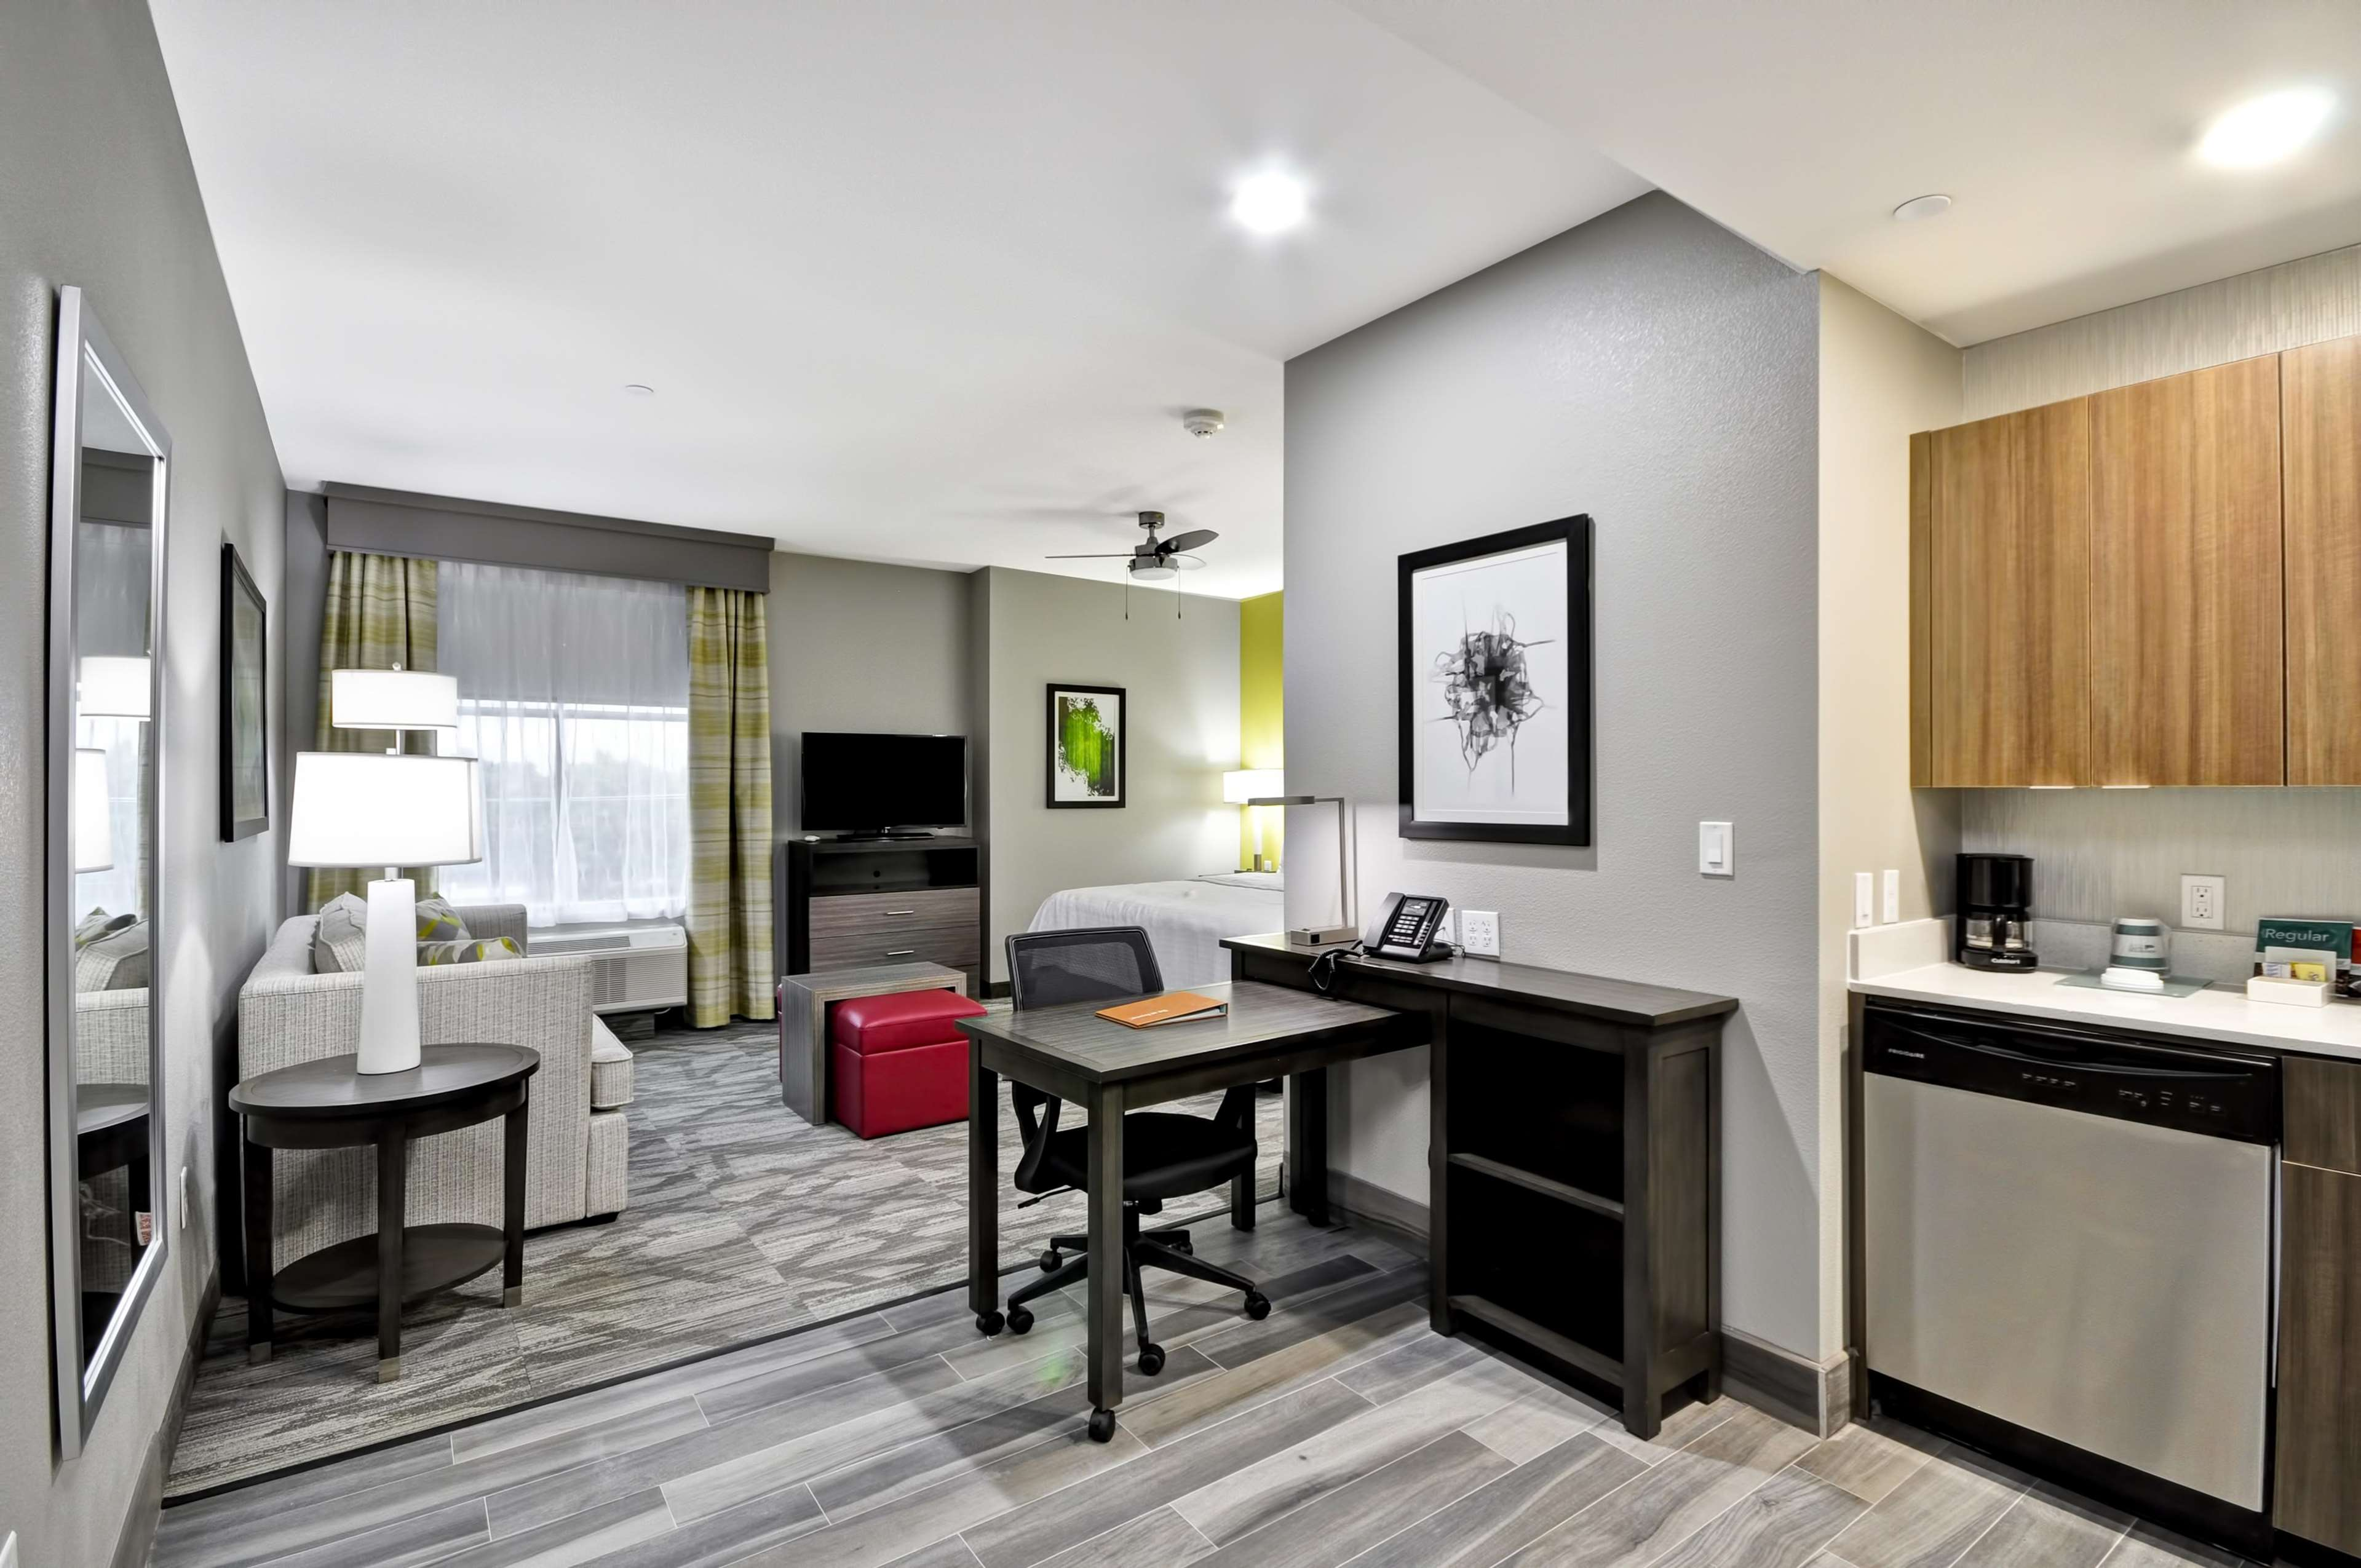 Homewood Suites by Hilton Tyler image 36